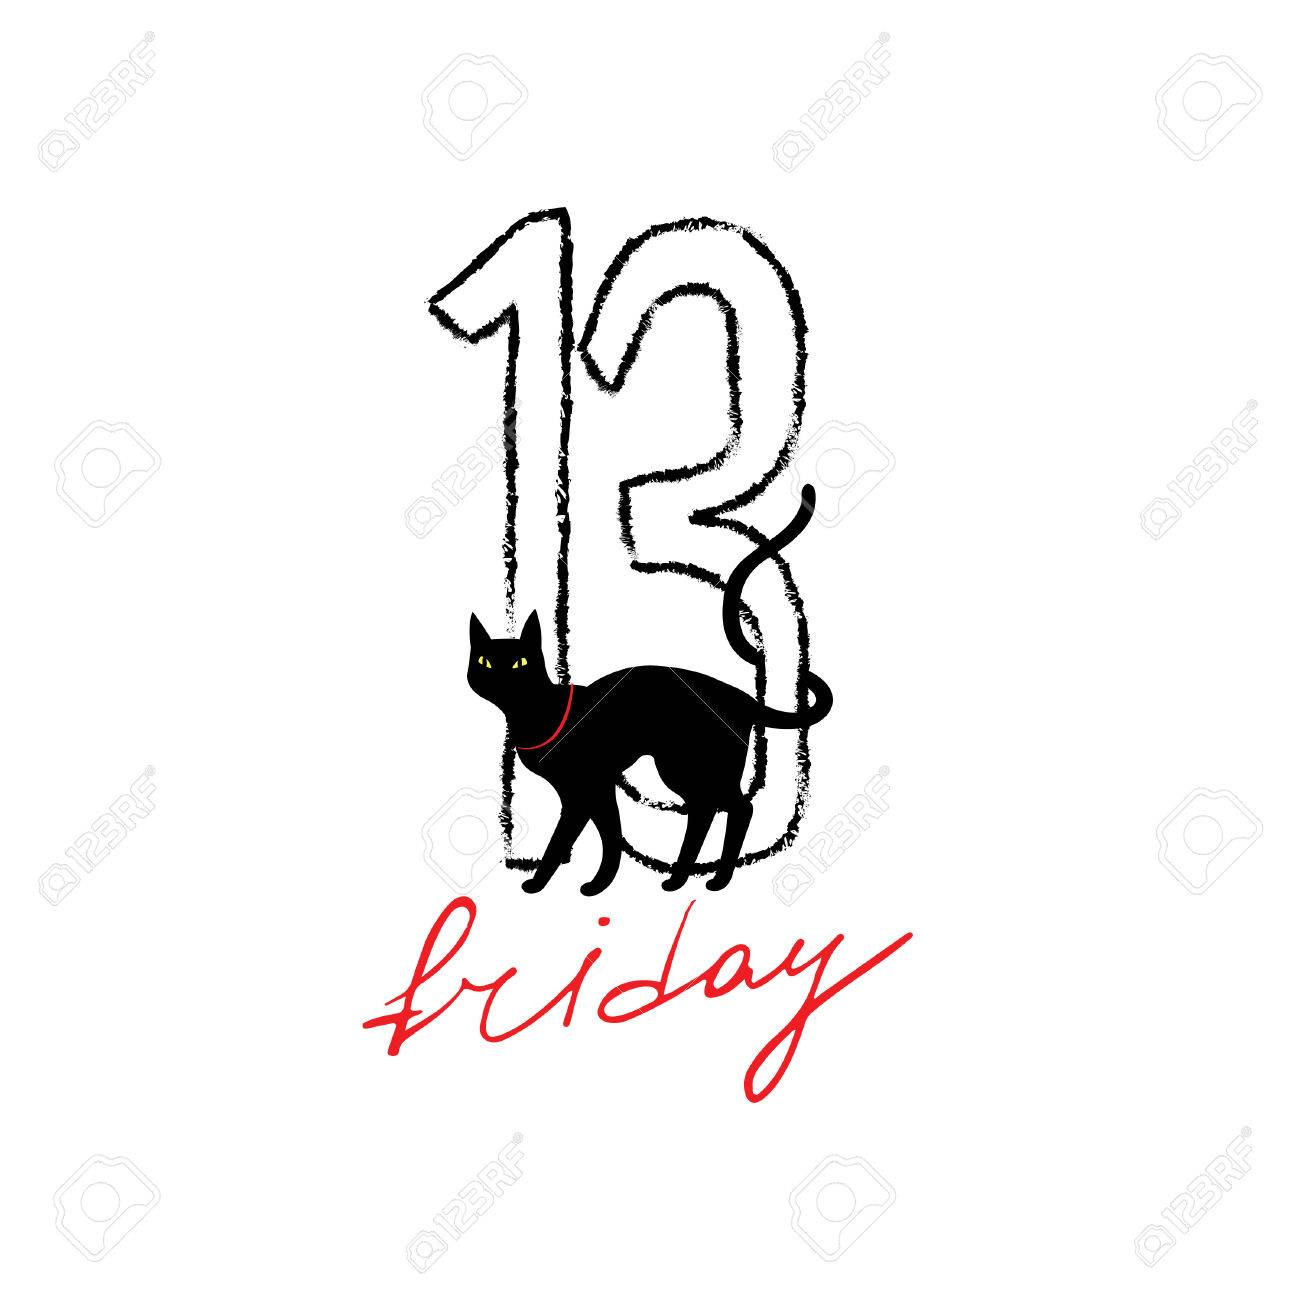 friday 13th grunge illustration with numerals and black cat rh 123rf com friday the 13th clip art images friday the 13th free clipart